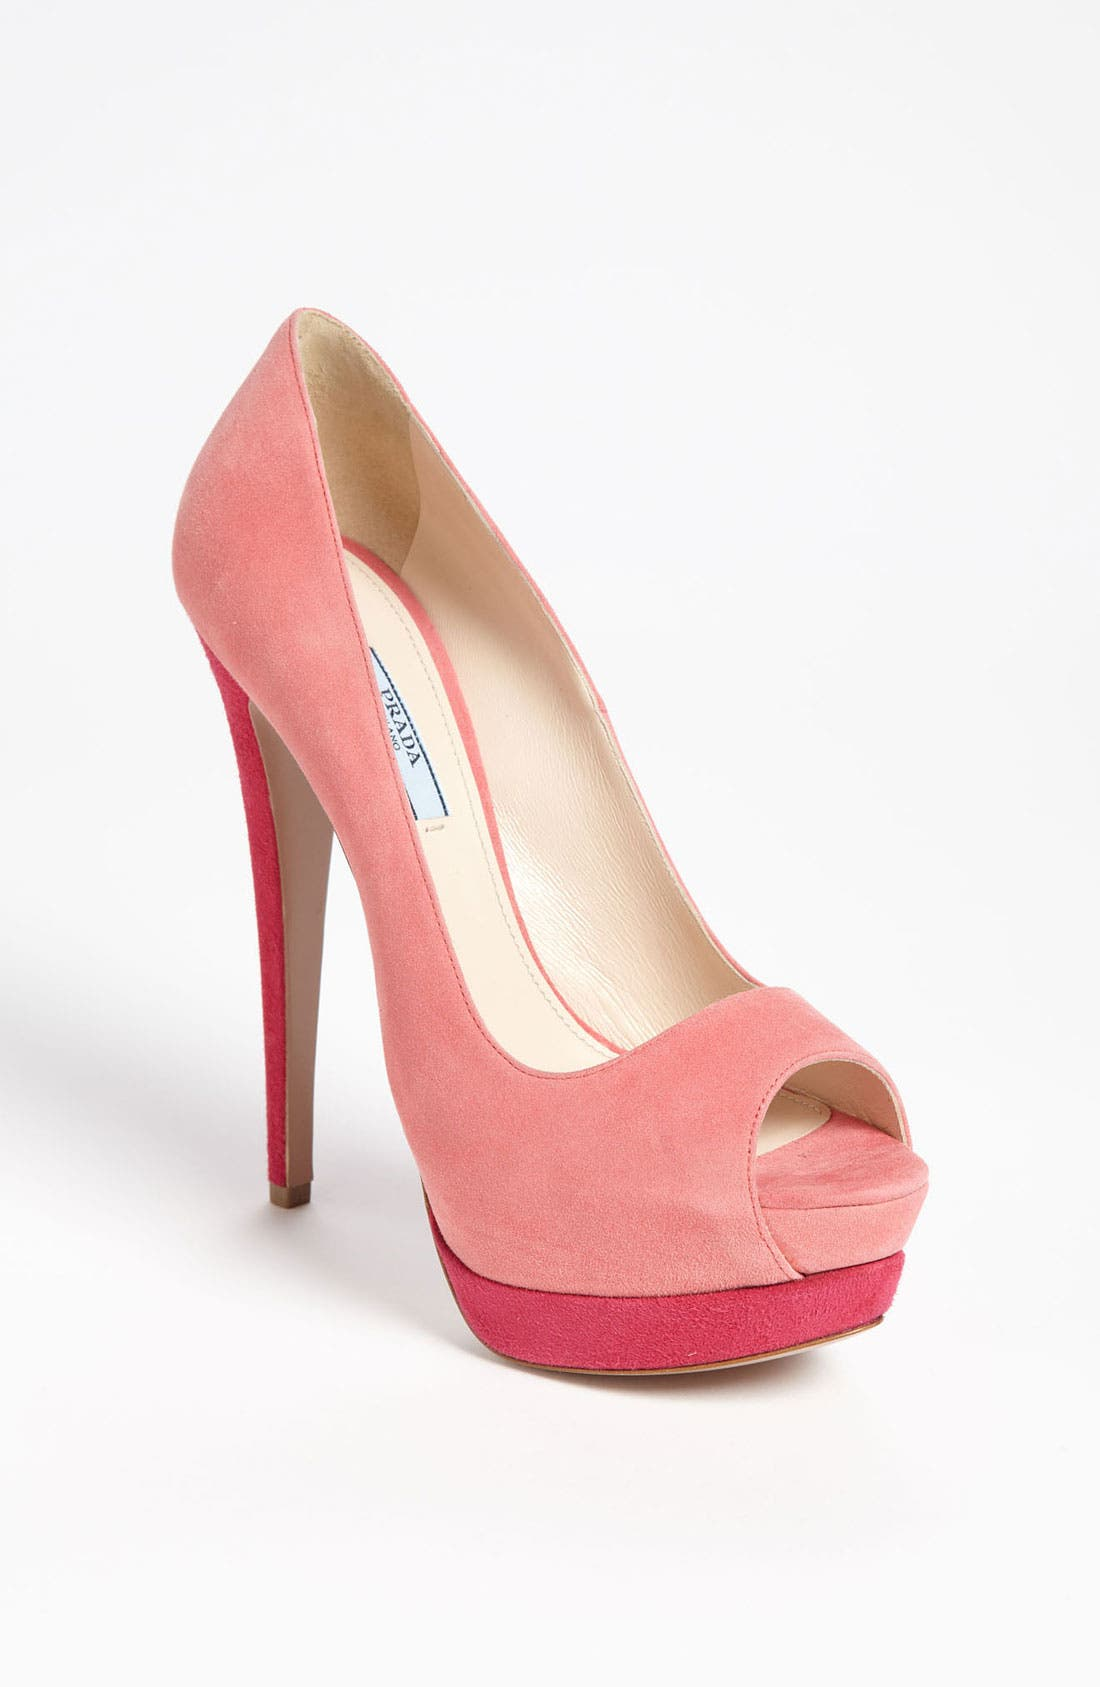 Alternate Image 1 Selected - Prada Bicolor Peep Toe Pump